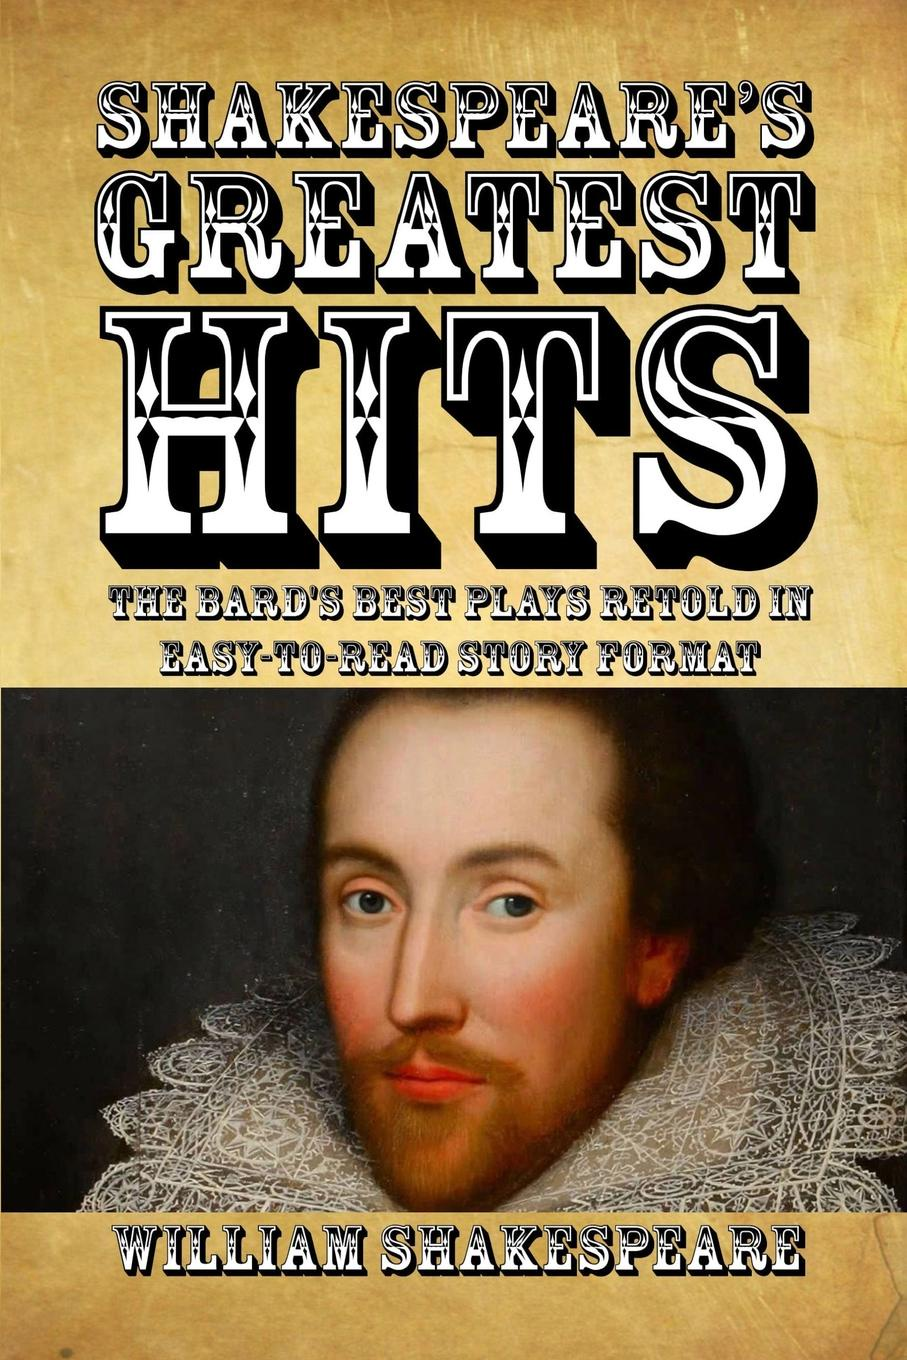 William Shakespeare Shakespeare's Greatest Hits. The Bard's Best Plays Told in Easy-to-Read Story Format cd george benson the greatest hits of all